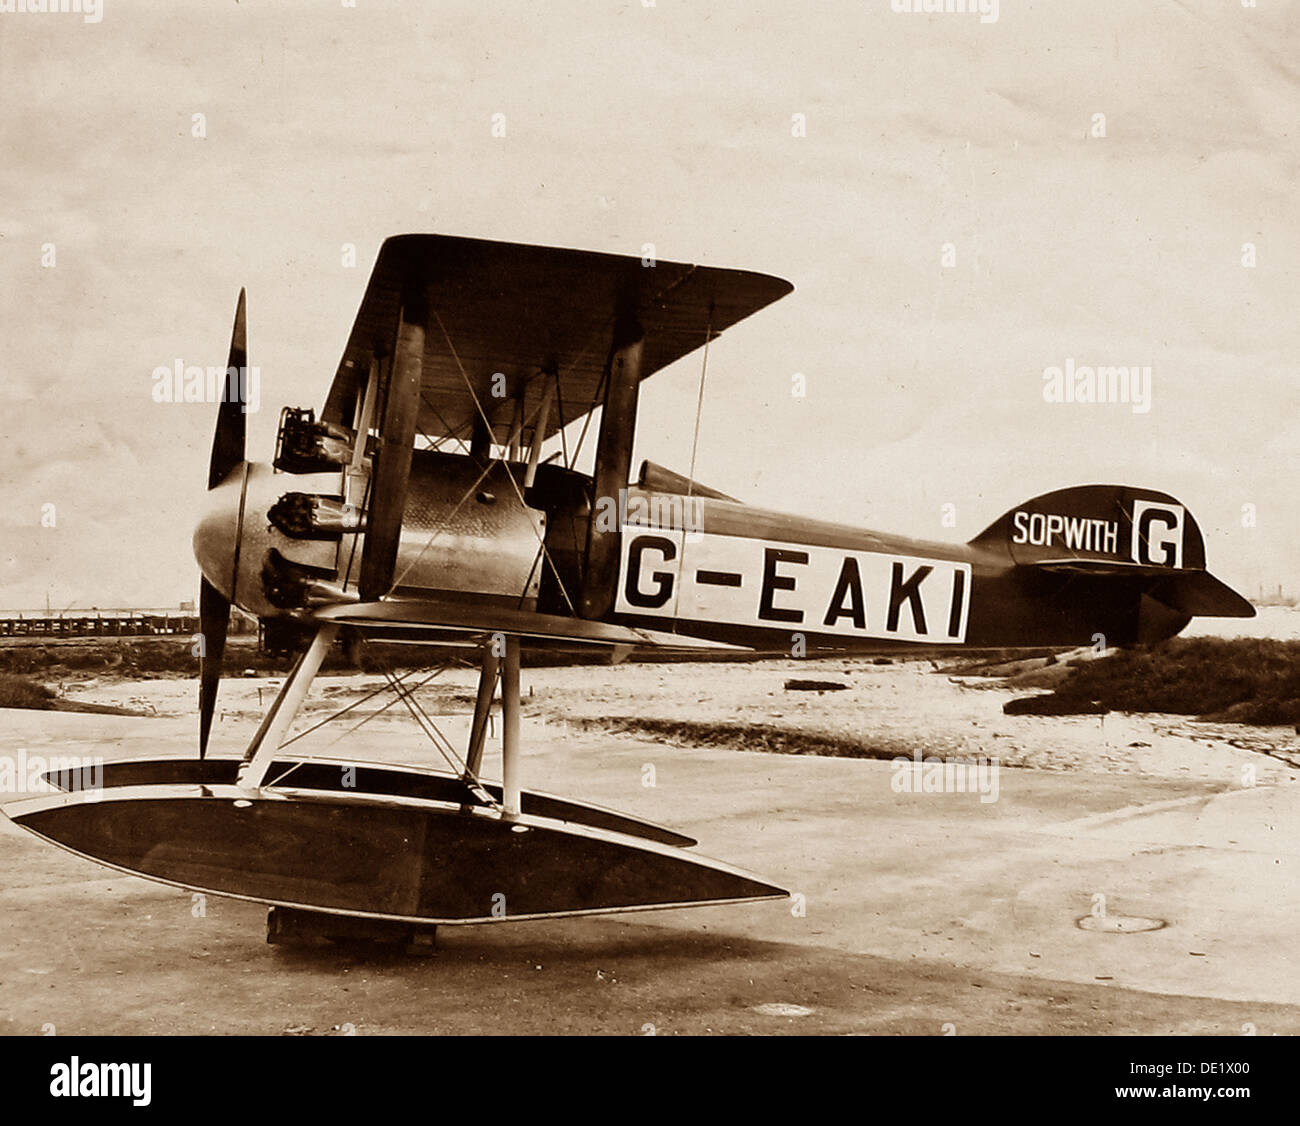 Sopwith biplane Schneider Cup in 1919 - Stock Image